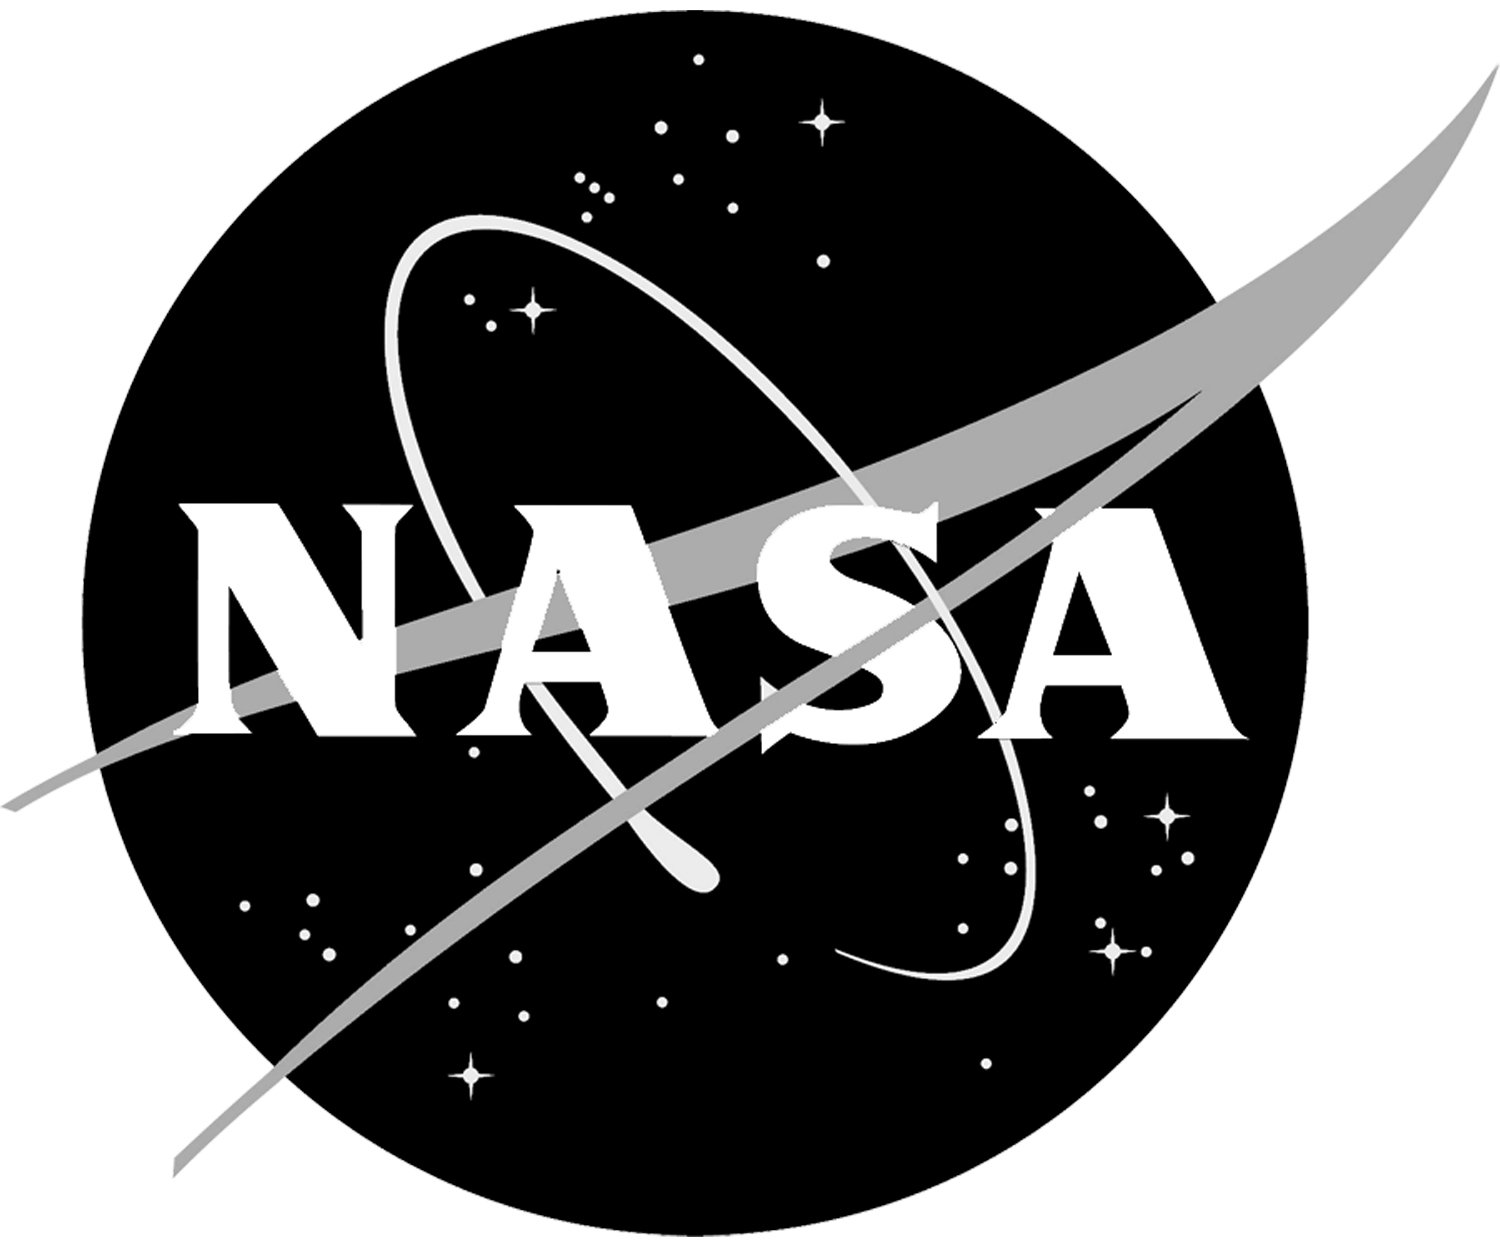 nasa official logo 2017 - photo #12